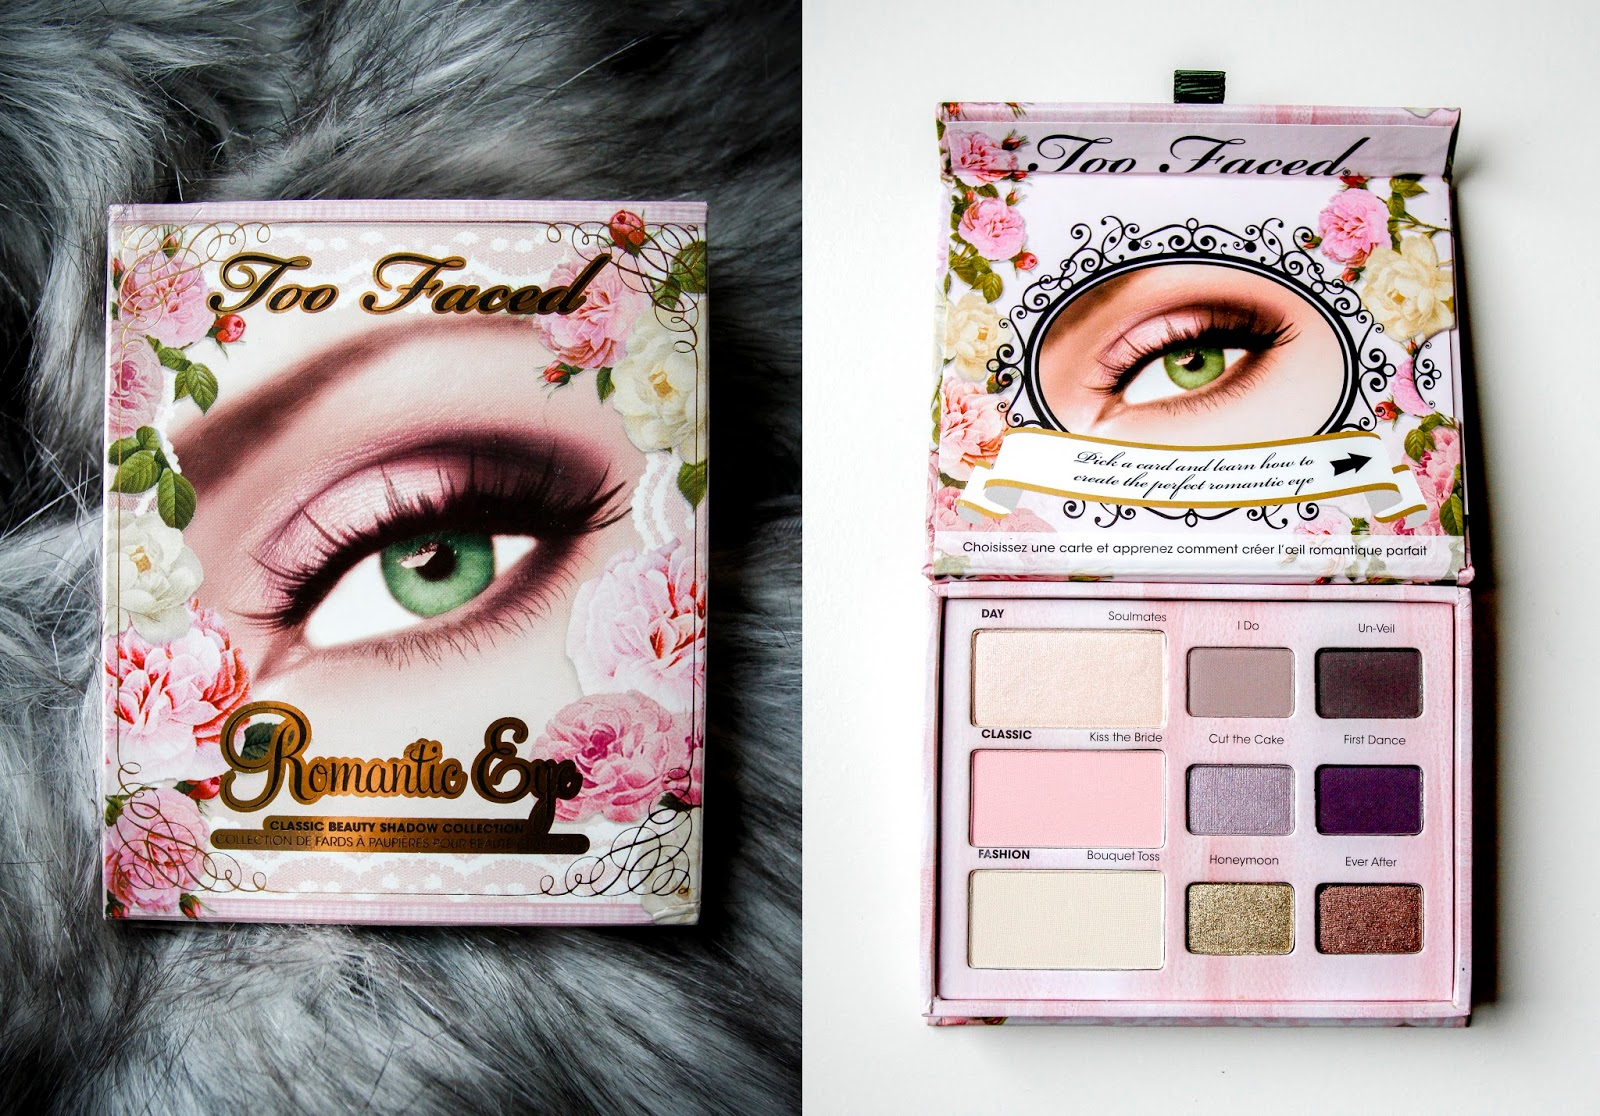 Romantic Eye palette cover shot and opened